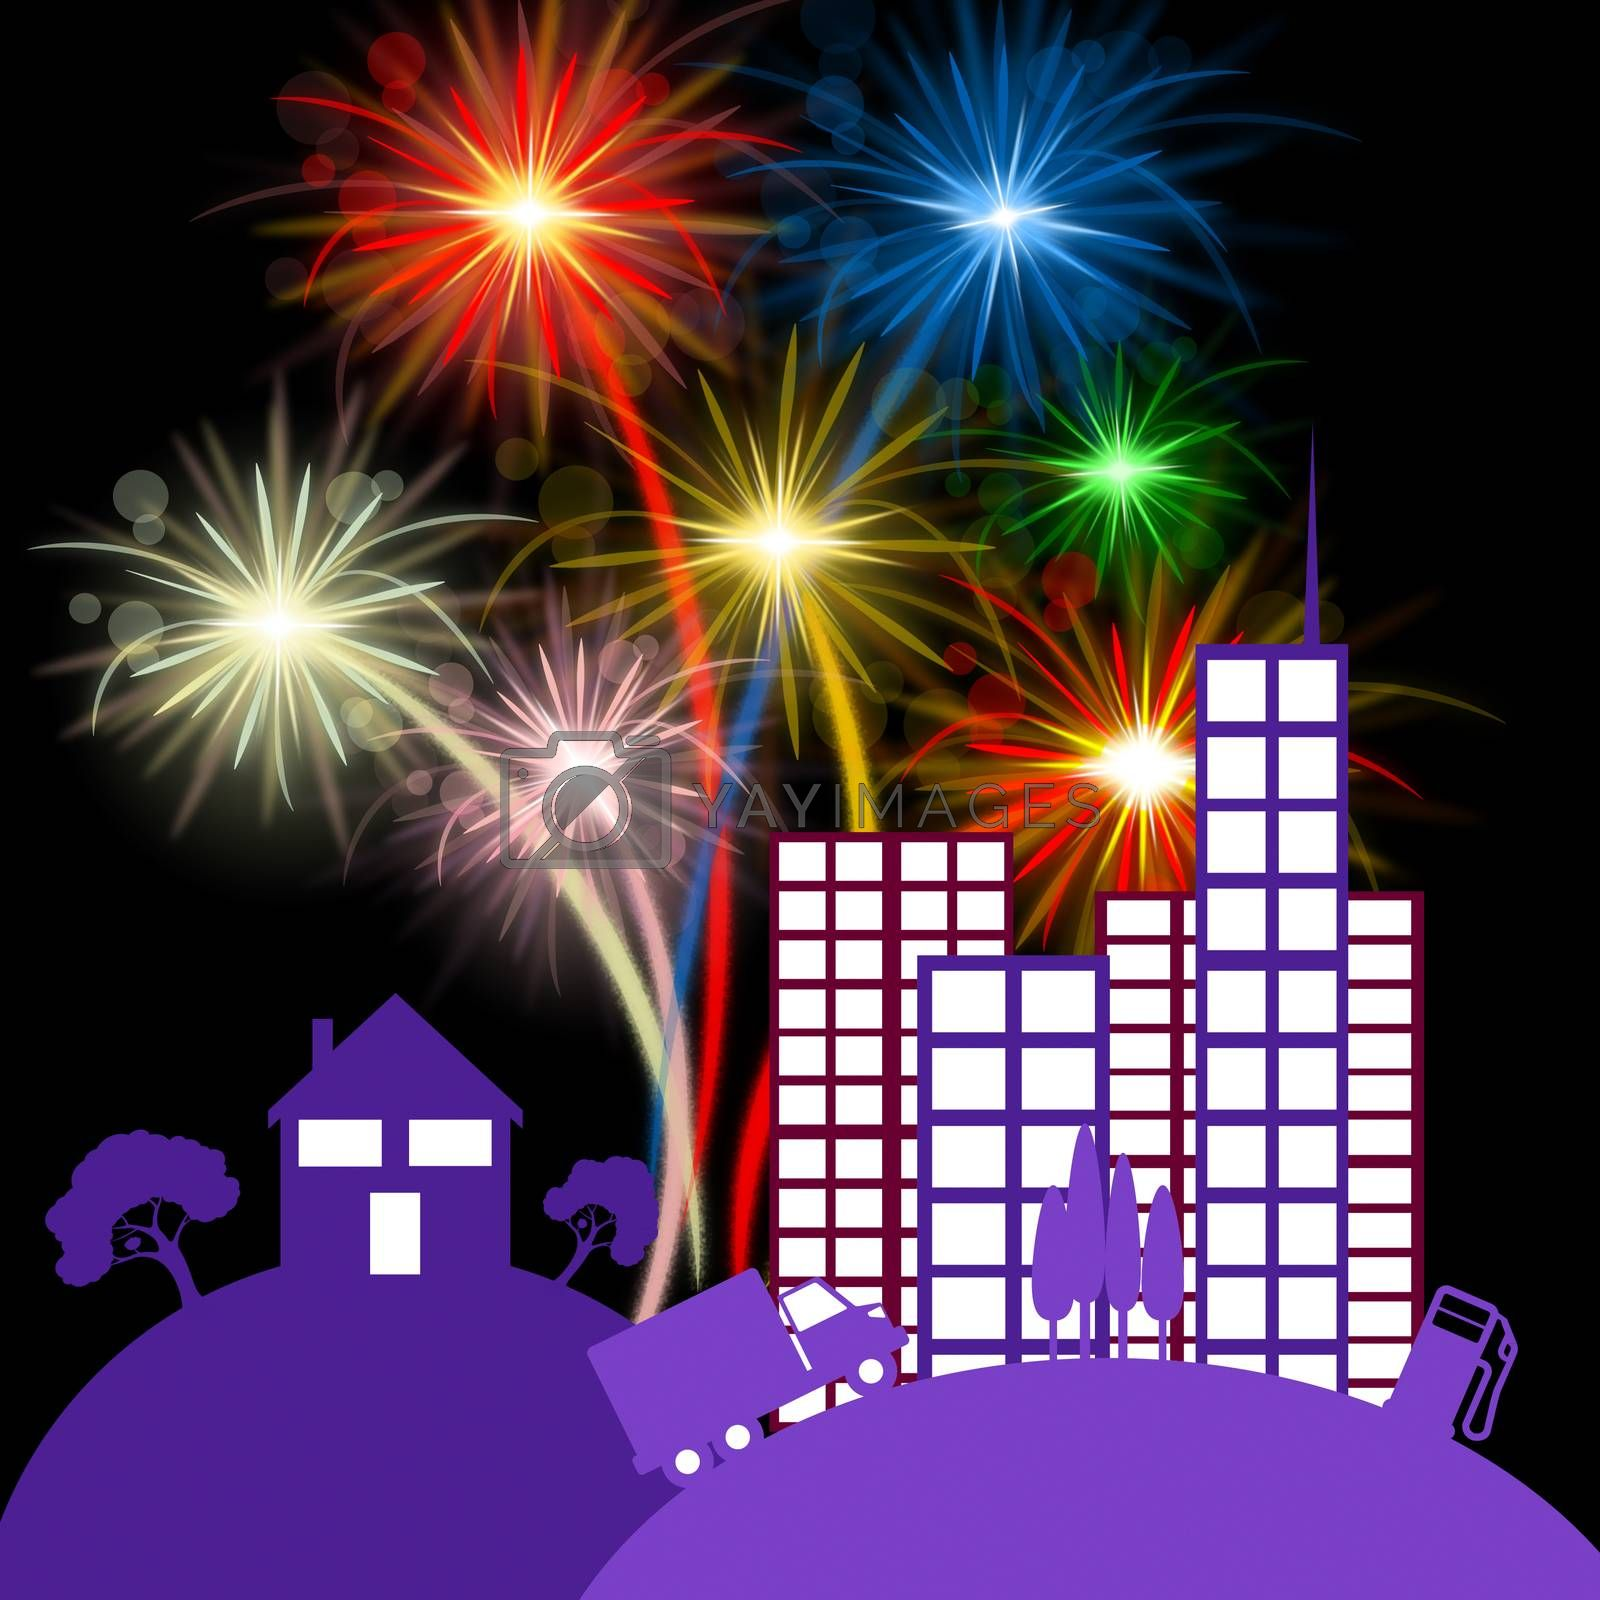 City Fireworks Indicating Night Sky And Firecracker